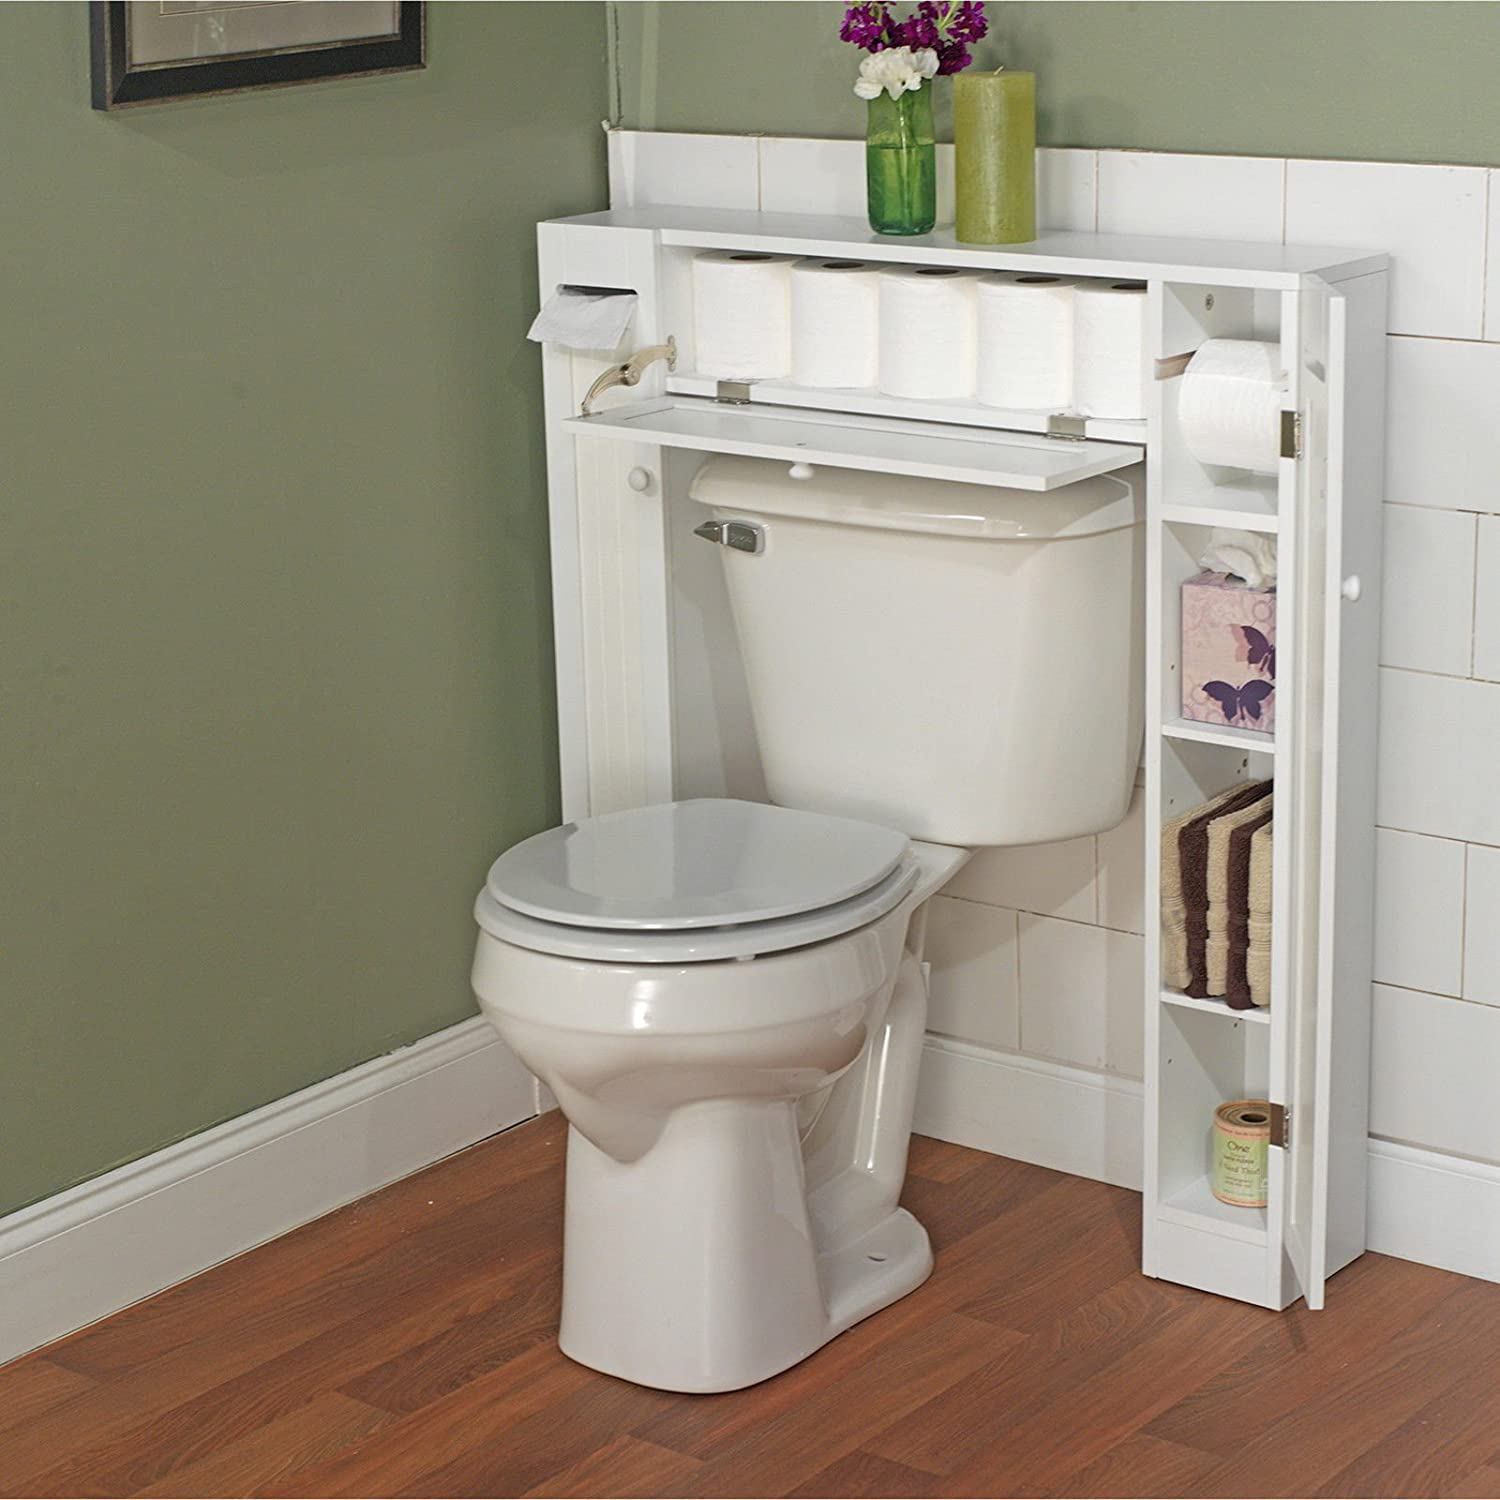 Storage Units Bathroom: Over Toilet Cabinet Storage Bathroom Home Organizer Shower